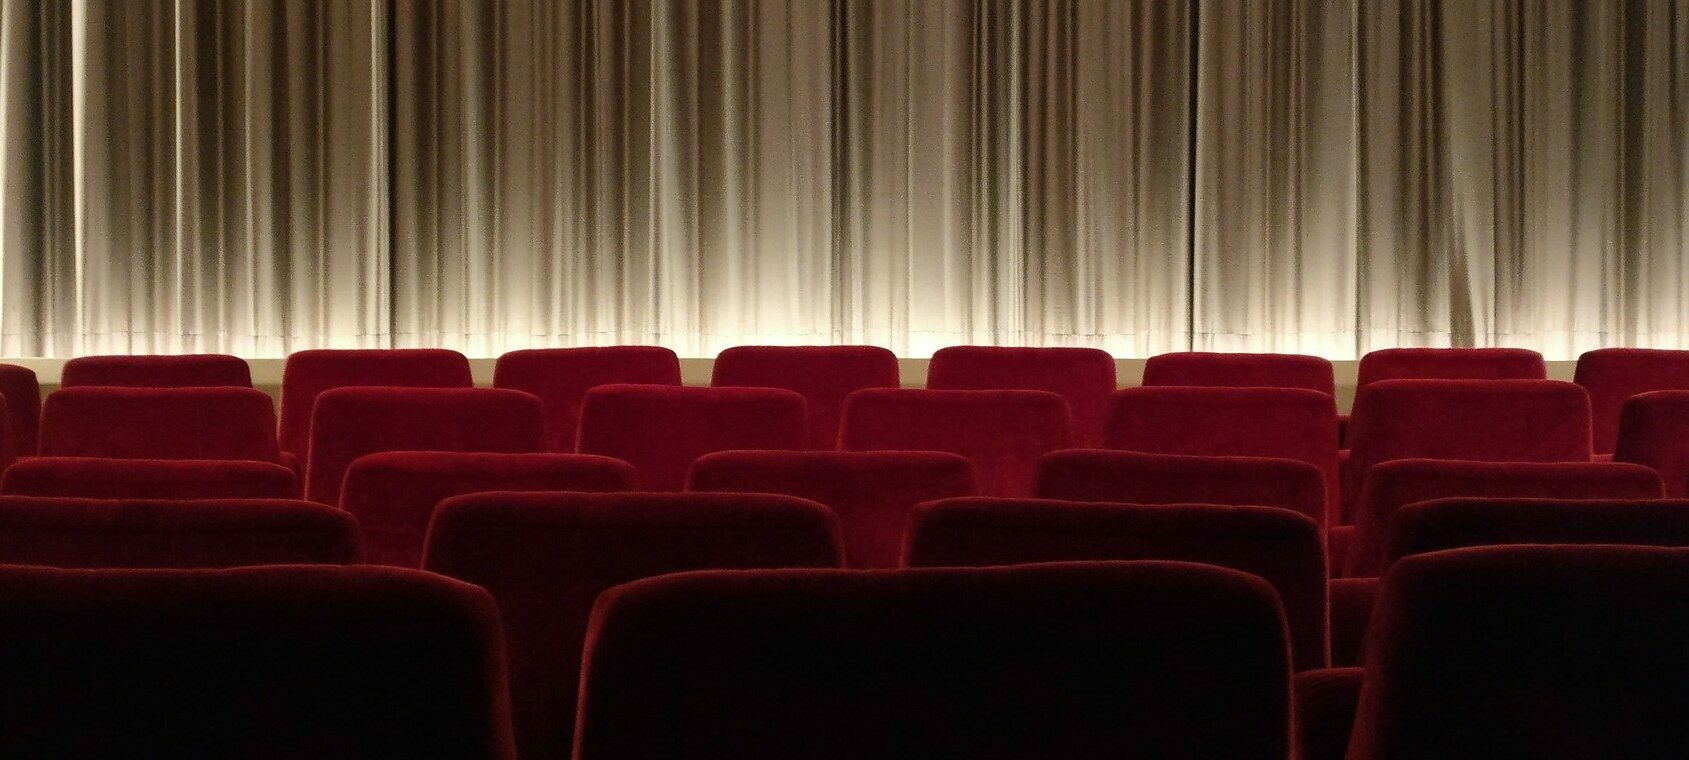 Legendary Athens cinemas that have survived